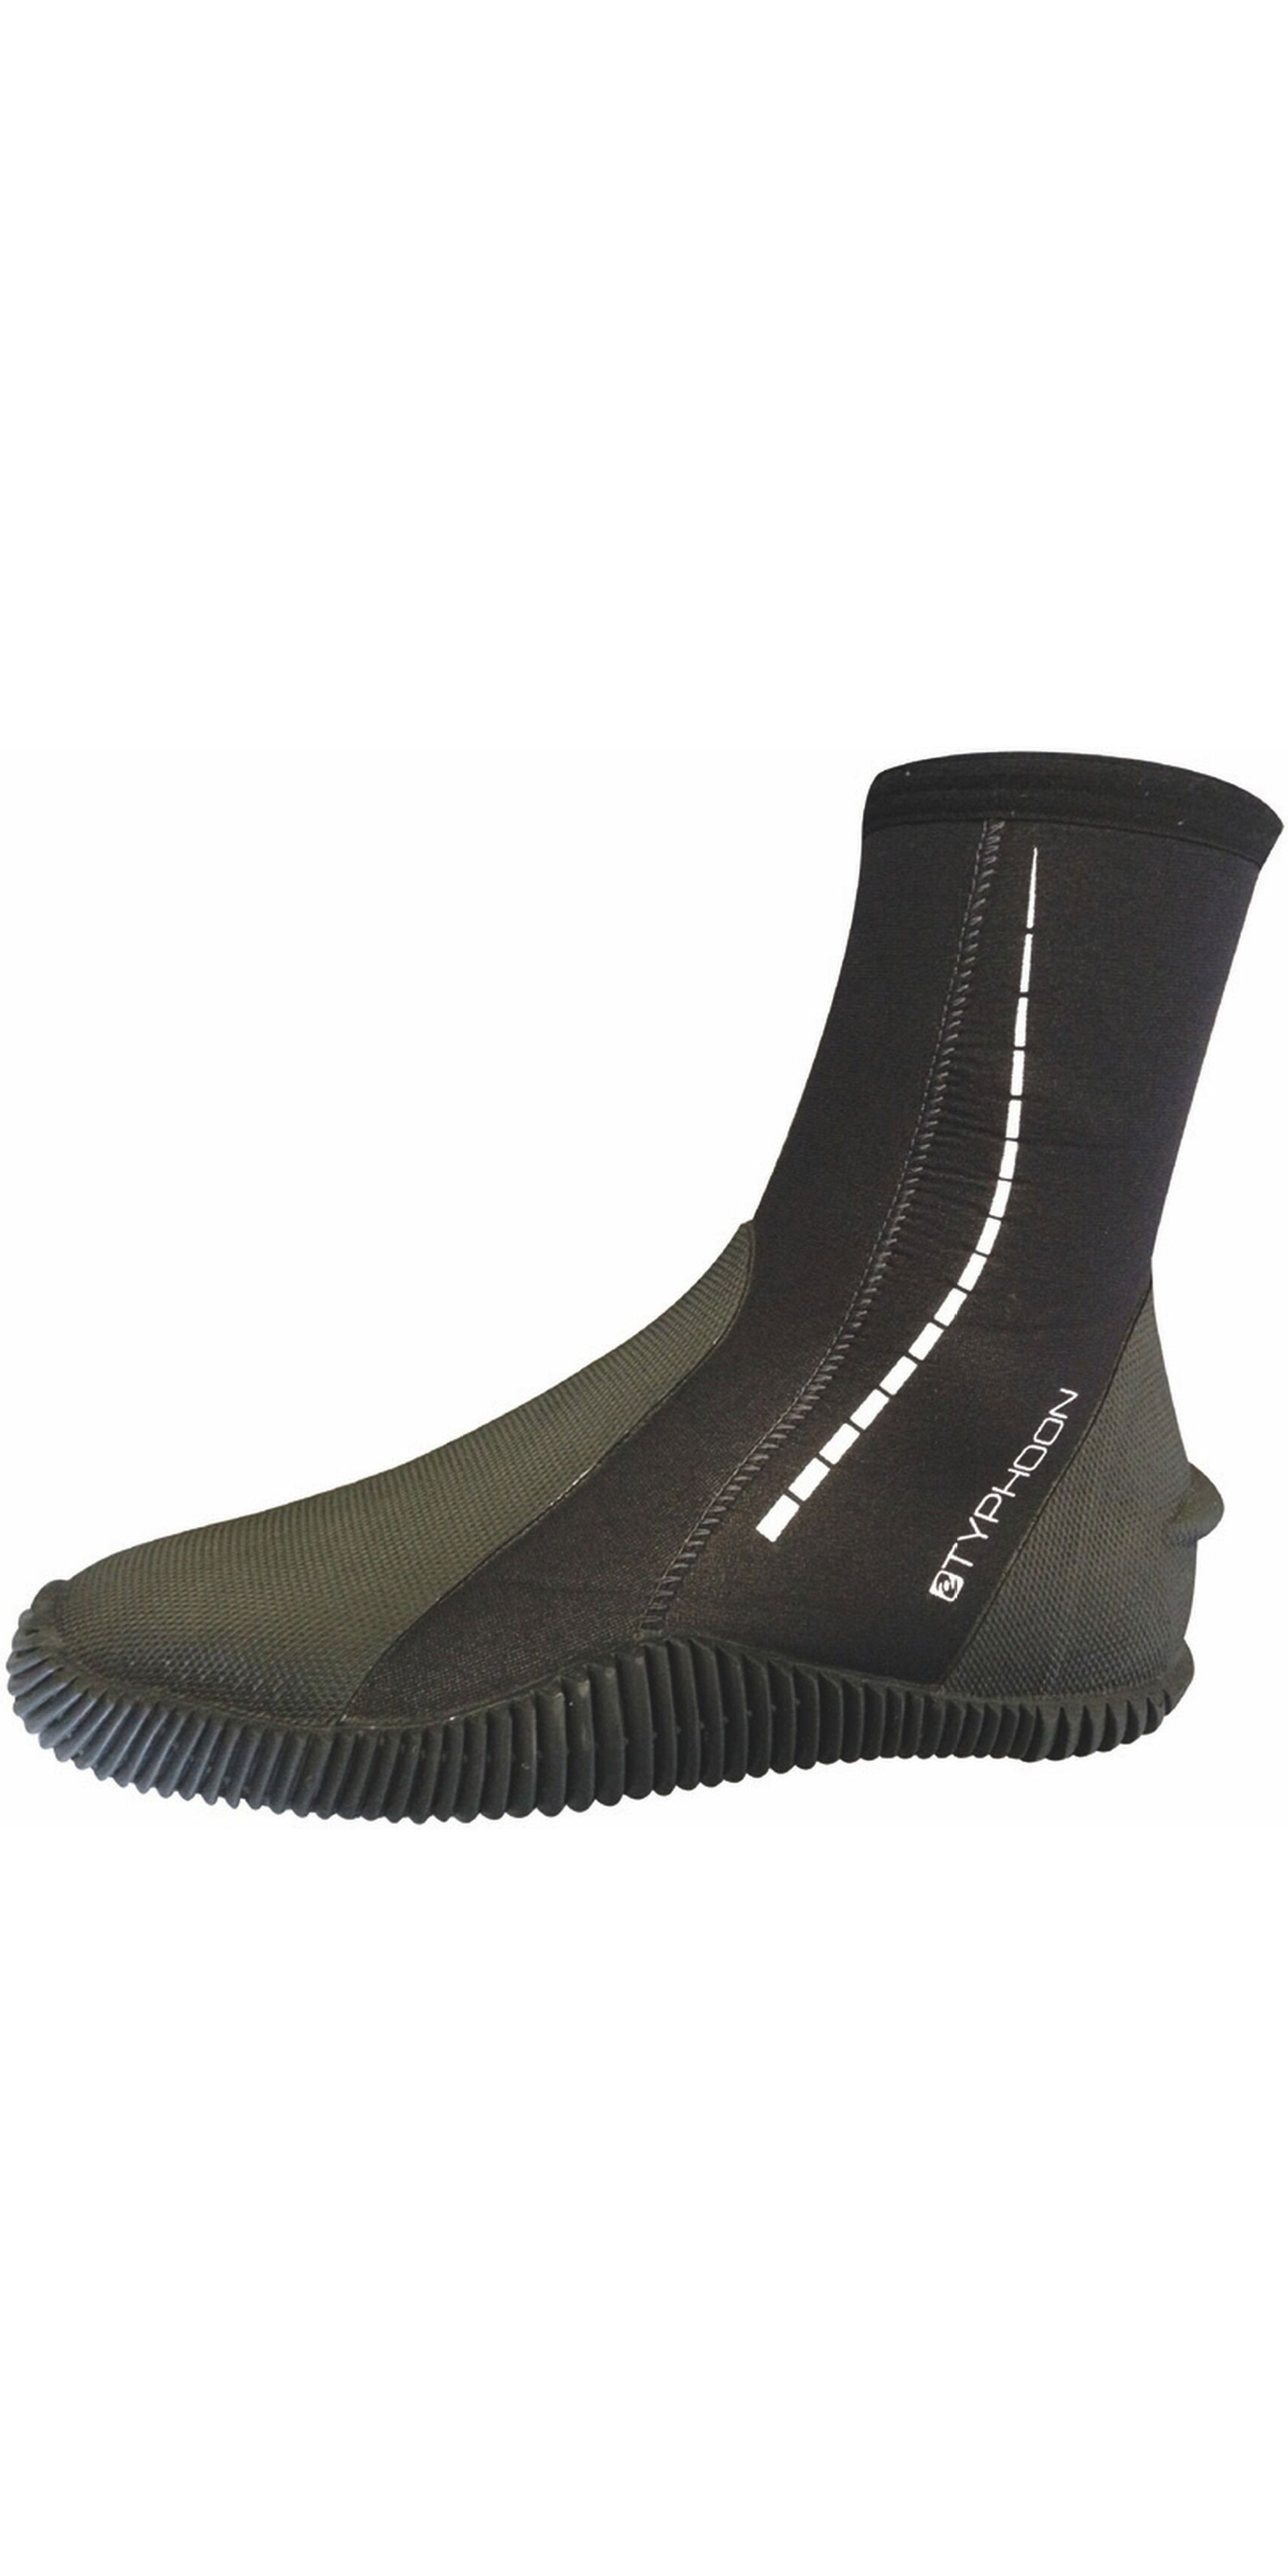 Adaptable Billabong Absolute Split-toe Surf Booties Pure White And Translucent Fins, Footwear & Gloves